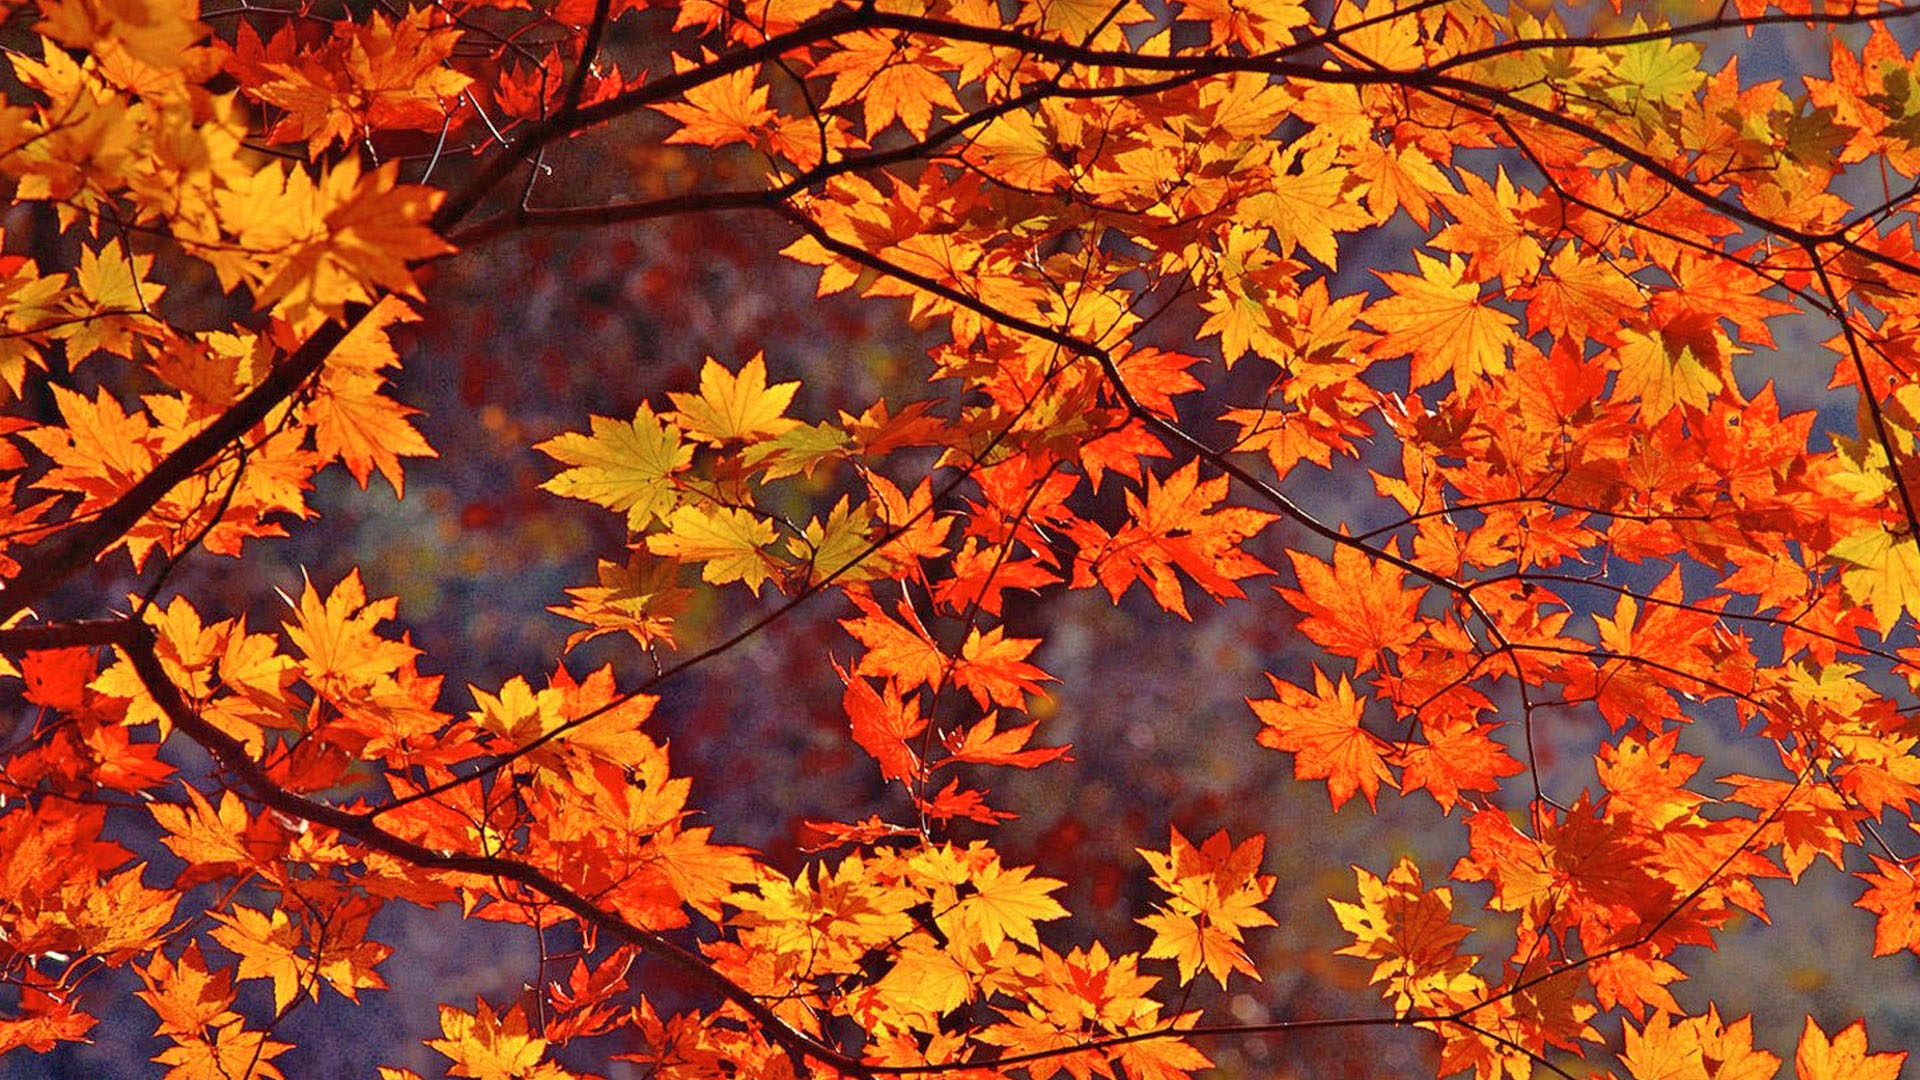 42 Autumn Leaves Hd Wallpapers On Wallpapersafari